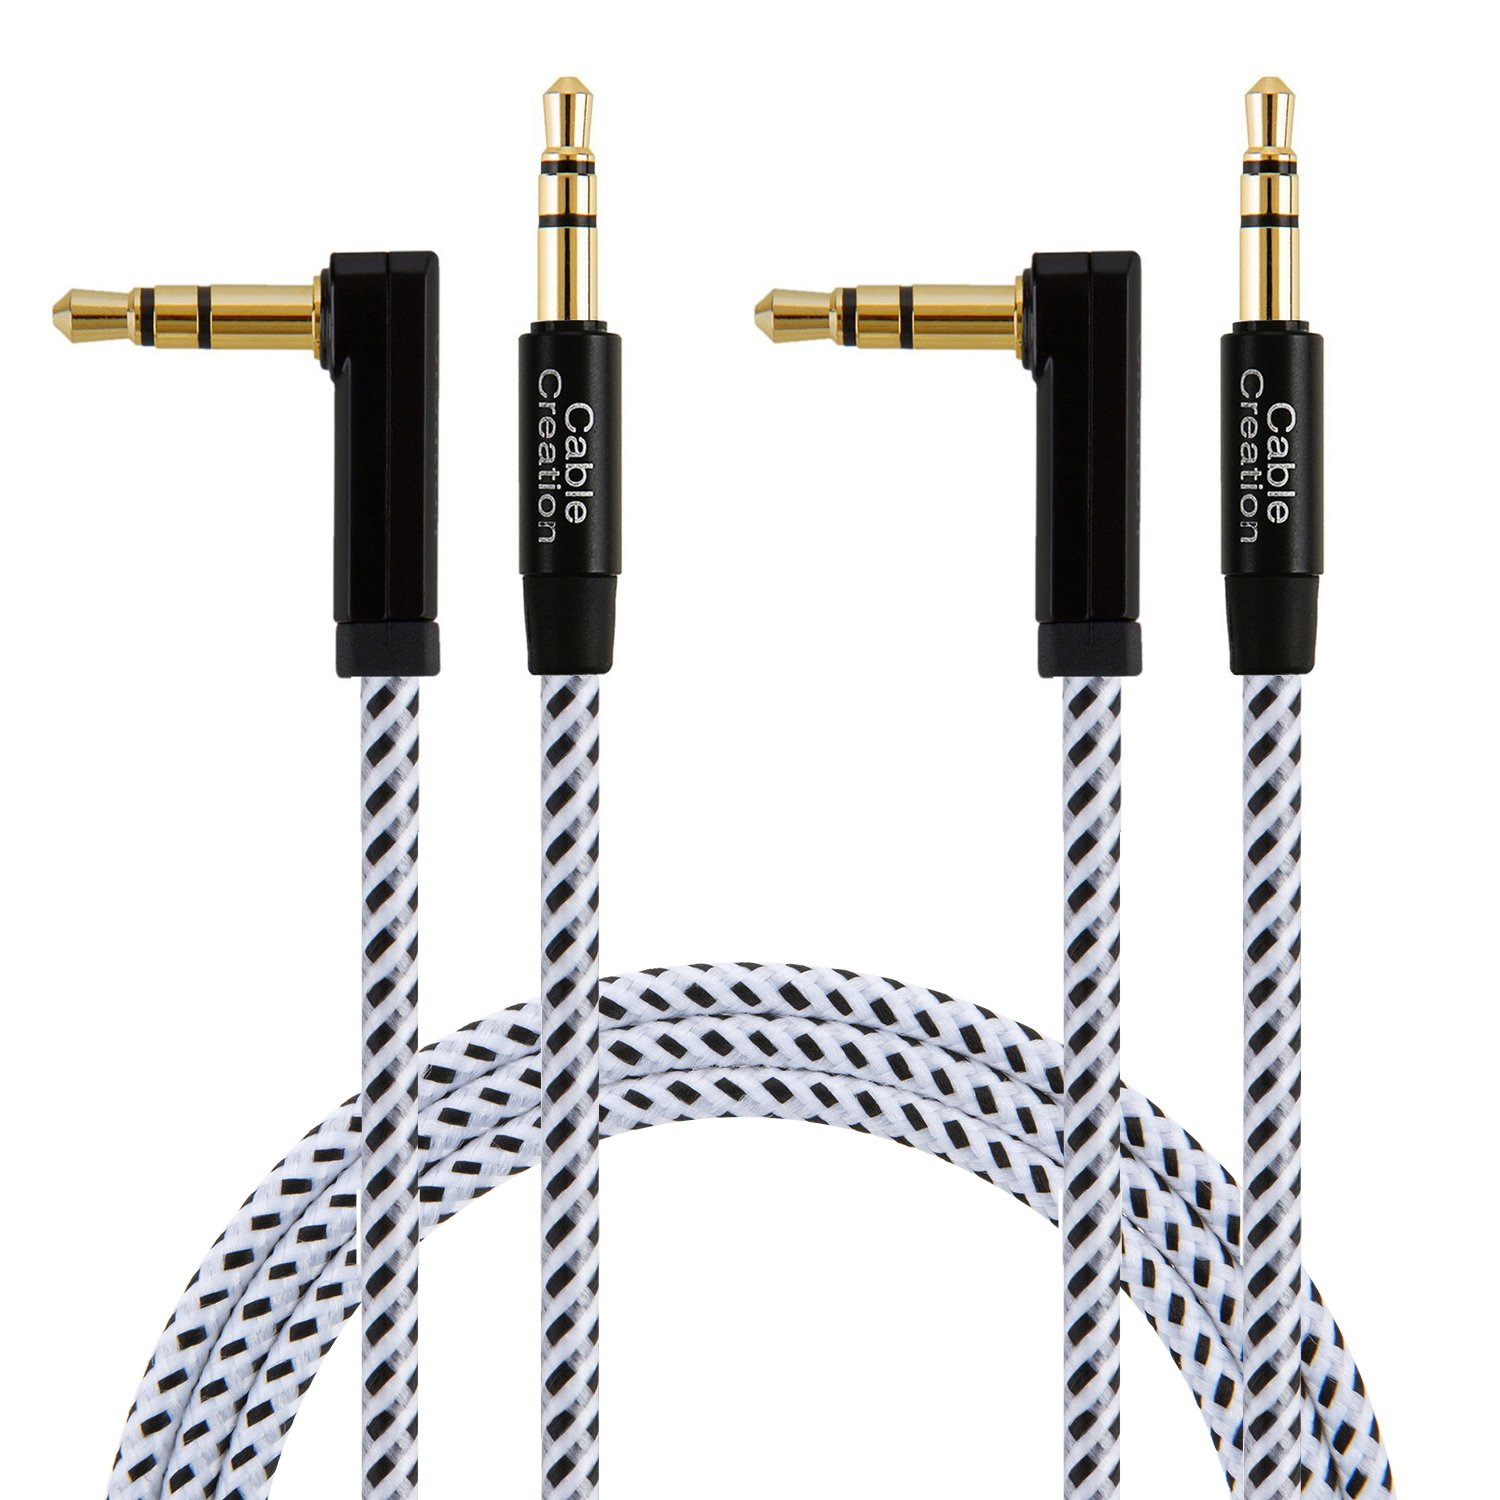 China wholesale Auxiliary Audio Cable & Adapter - 3.5mm Audio Cables 90 Degree, #CC0380 – CableCreation